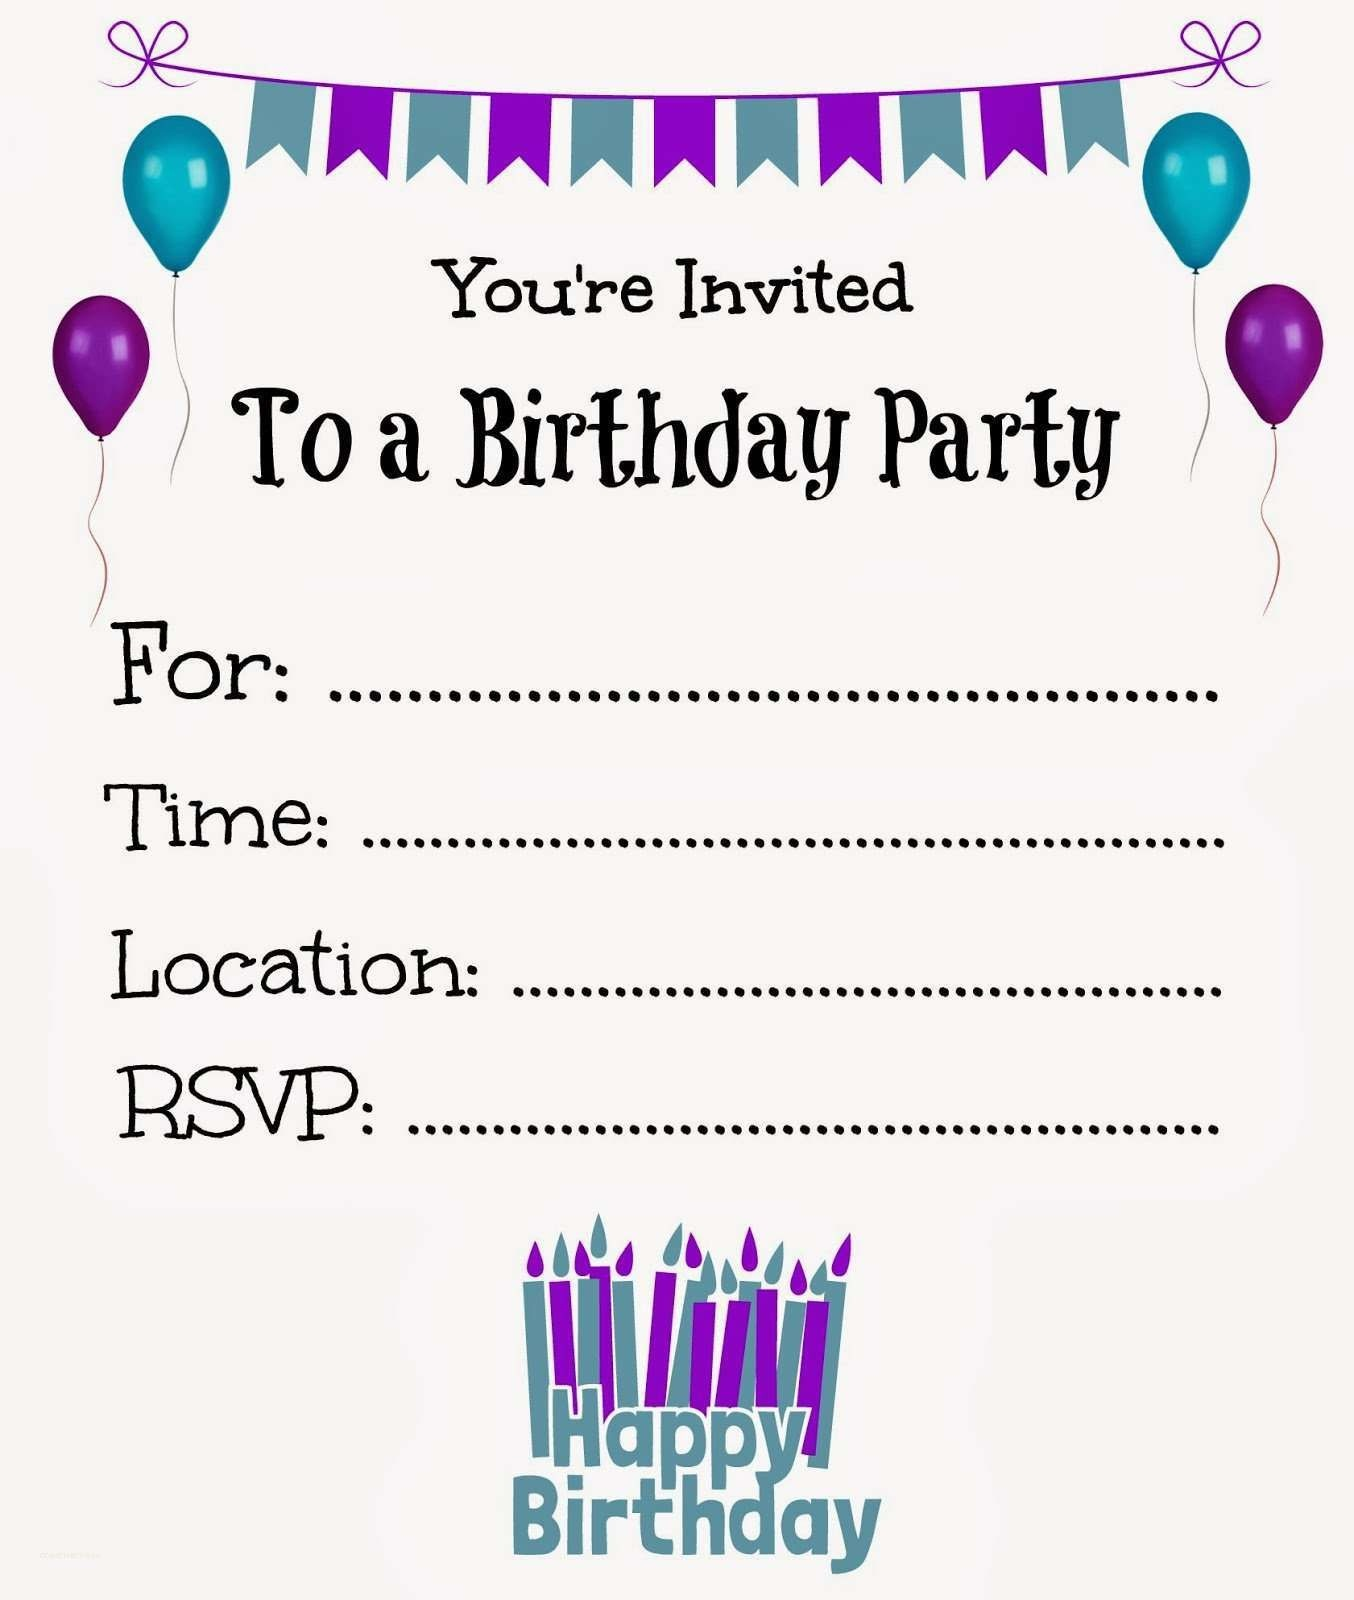 New Free Online Printable Birthday Party Invitations | Holiday - Birthday Party Invitations Online Free Printable